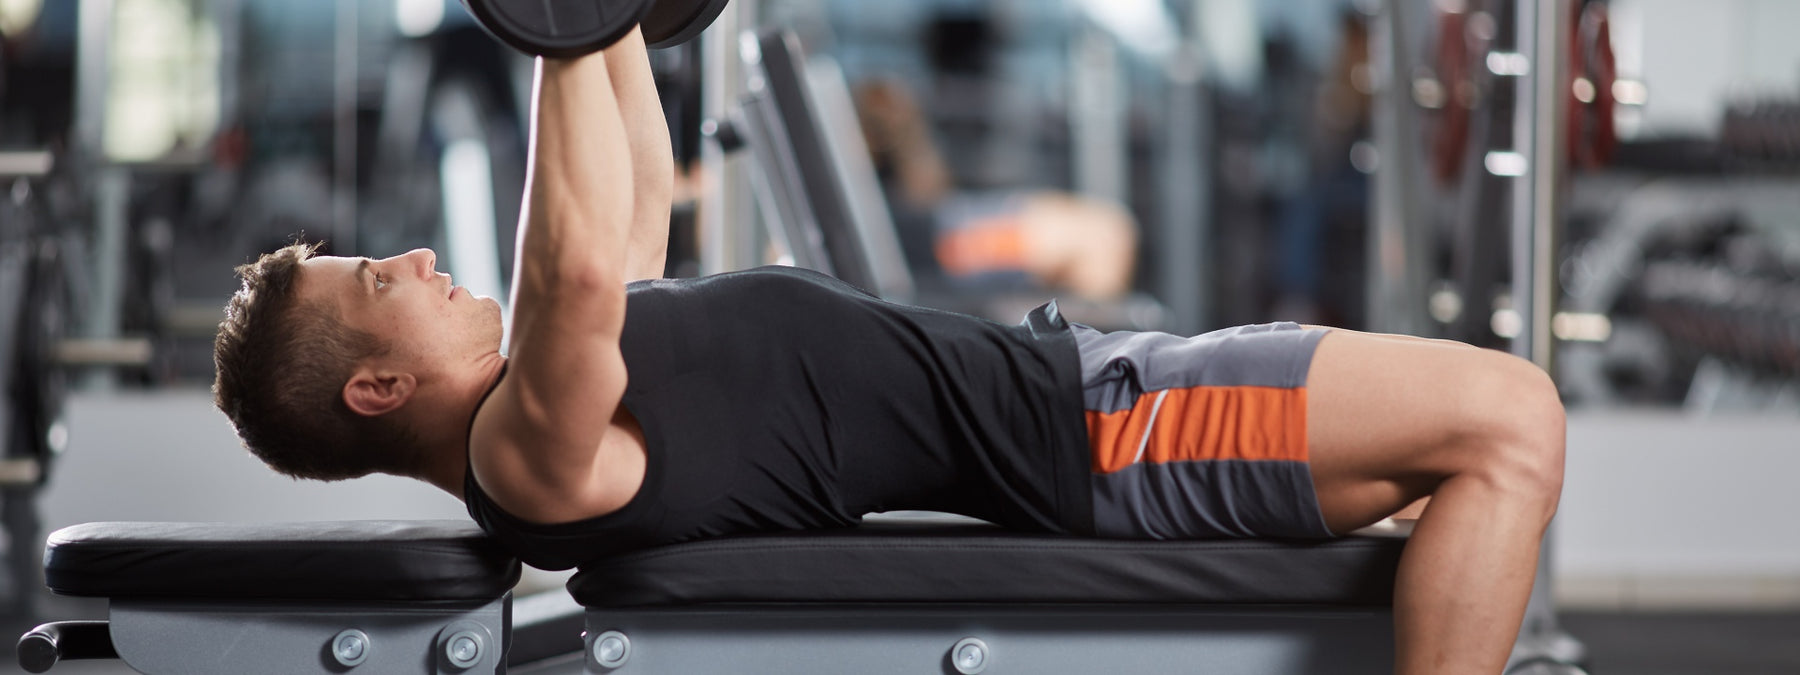 3 Intense Superset Workouts for More Muscle and Better Conditioning